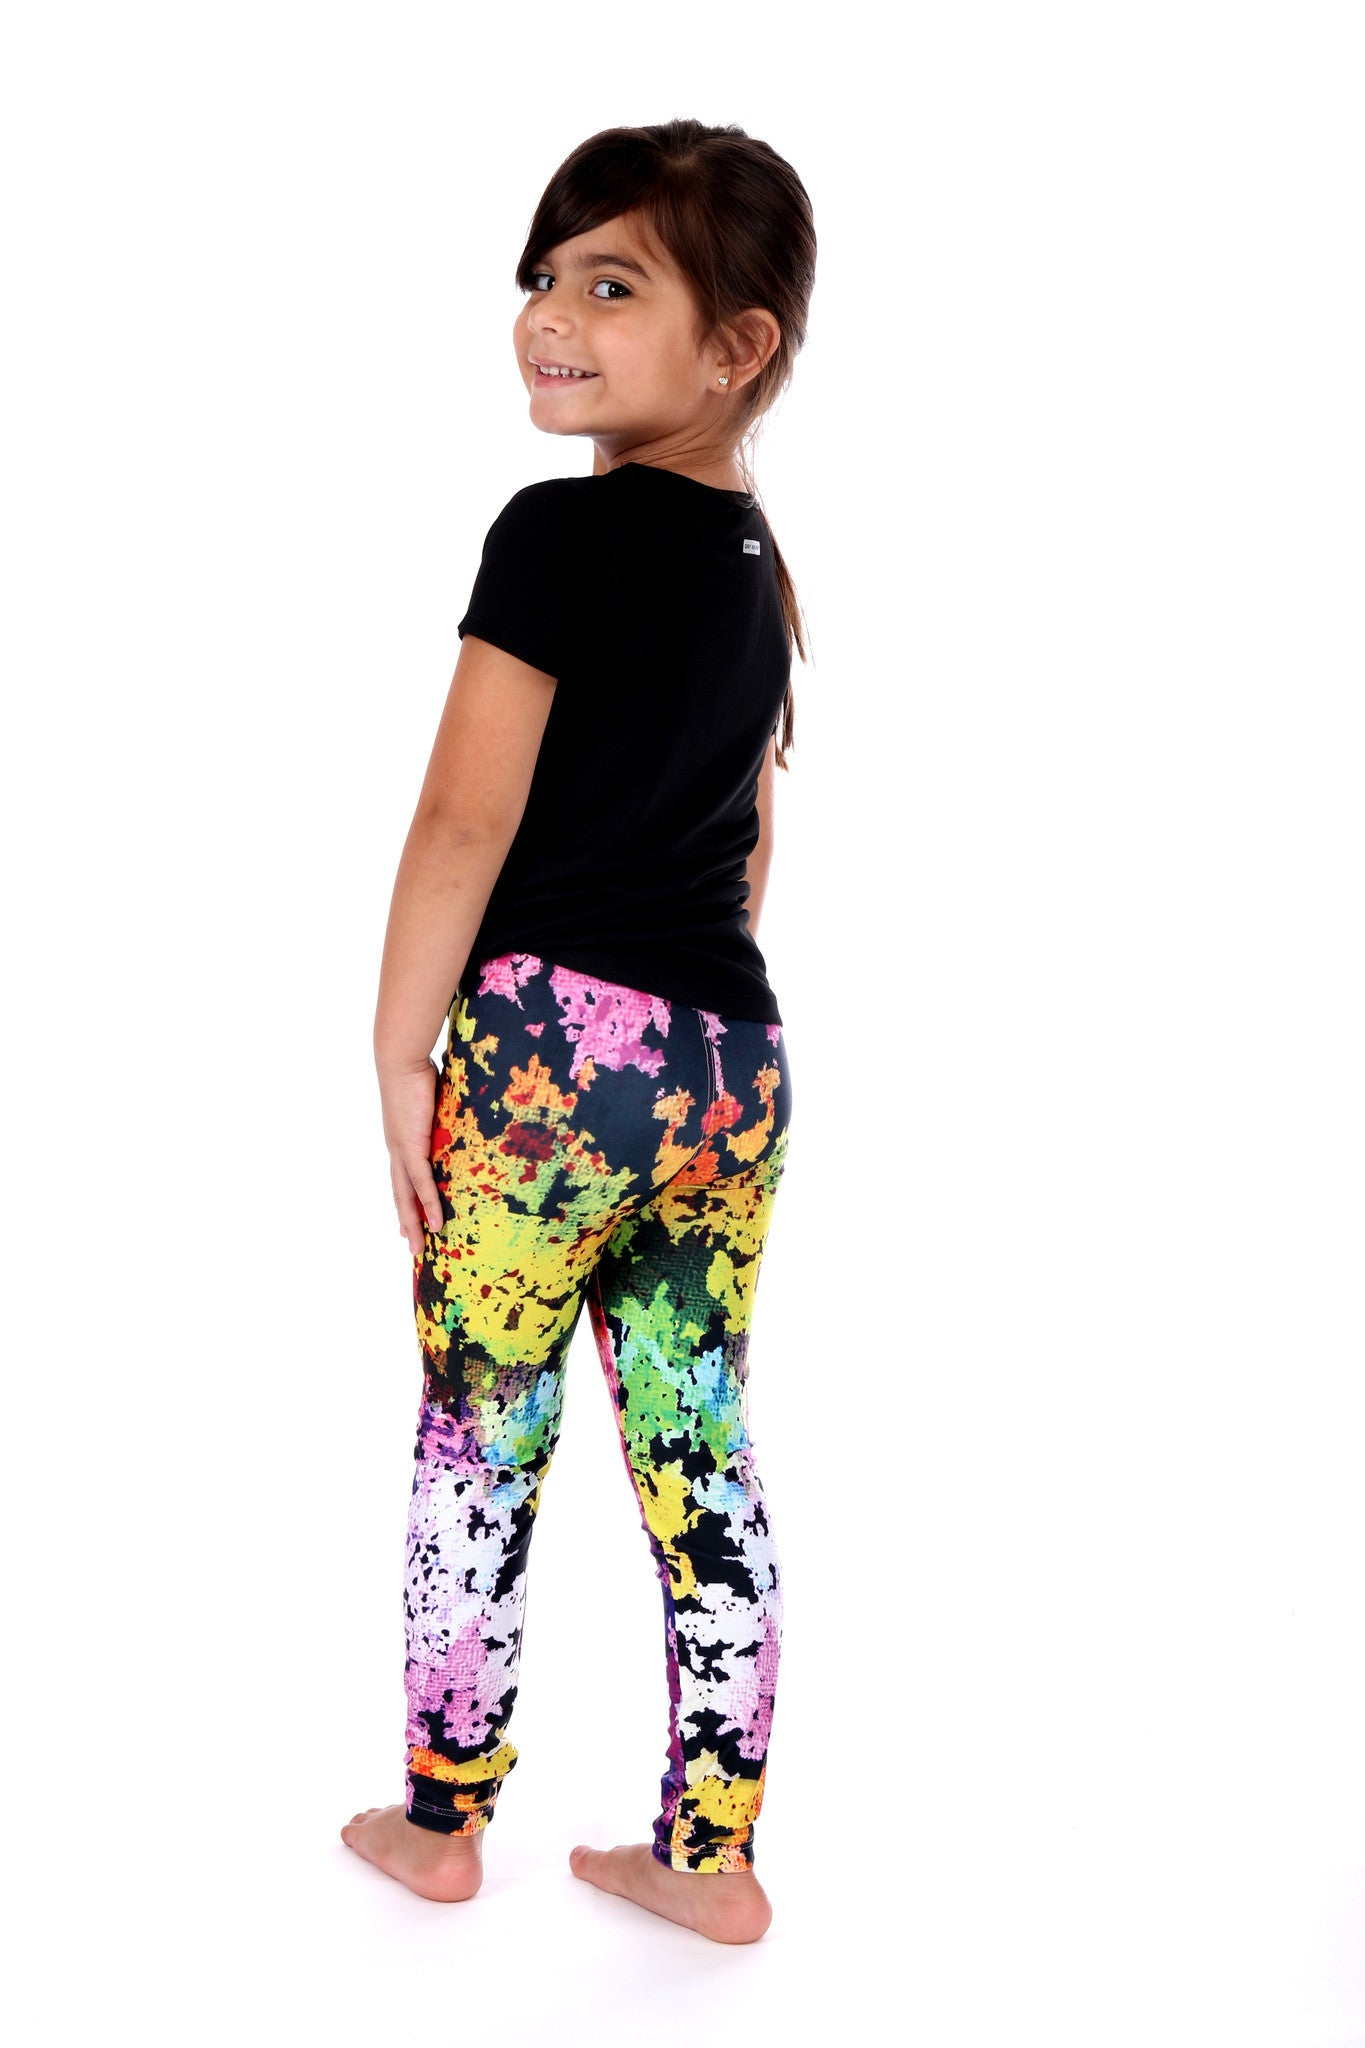 Colorful Craze Girls - Leggings - Butterfly Armor